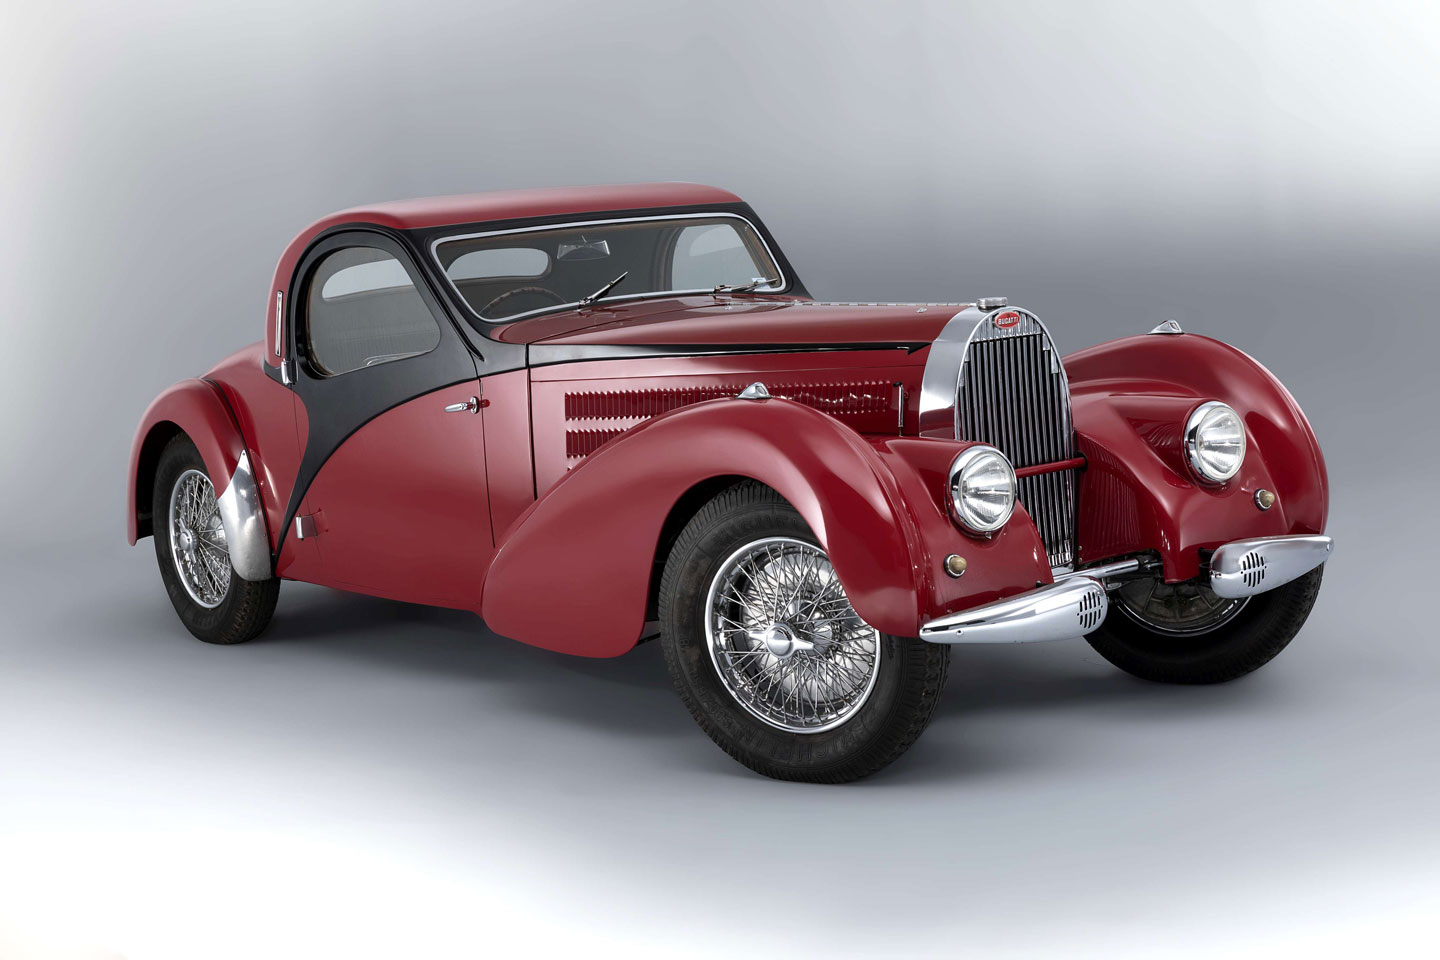 6 Cars We're Looking Forward To Seeing At The Paris Auctions